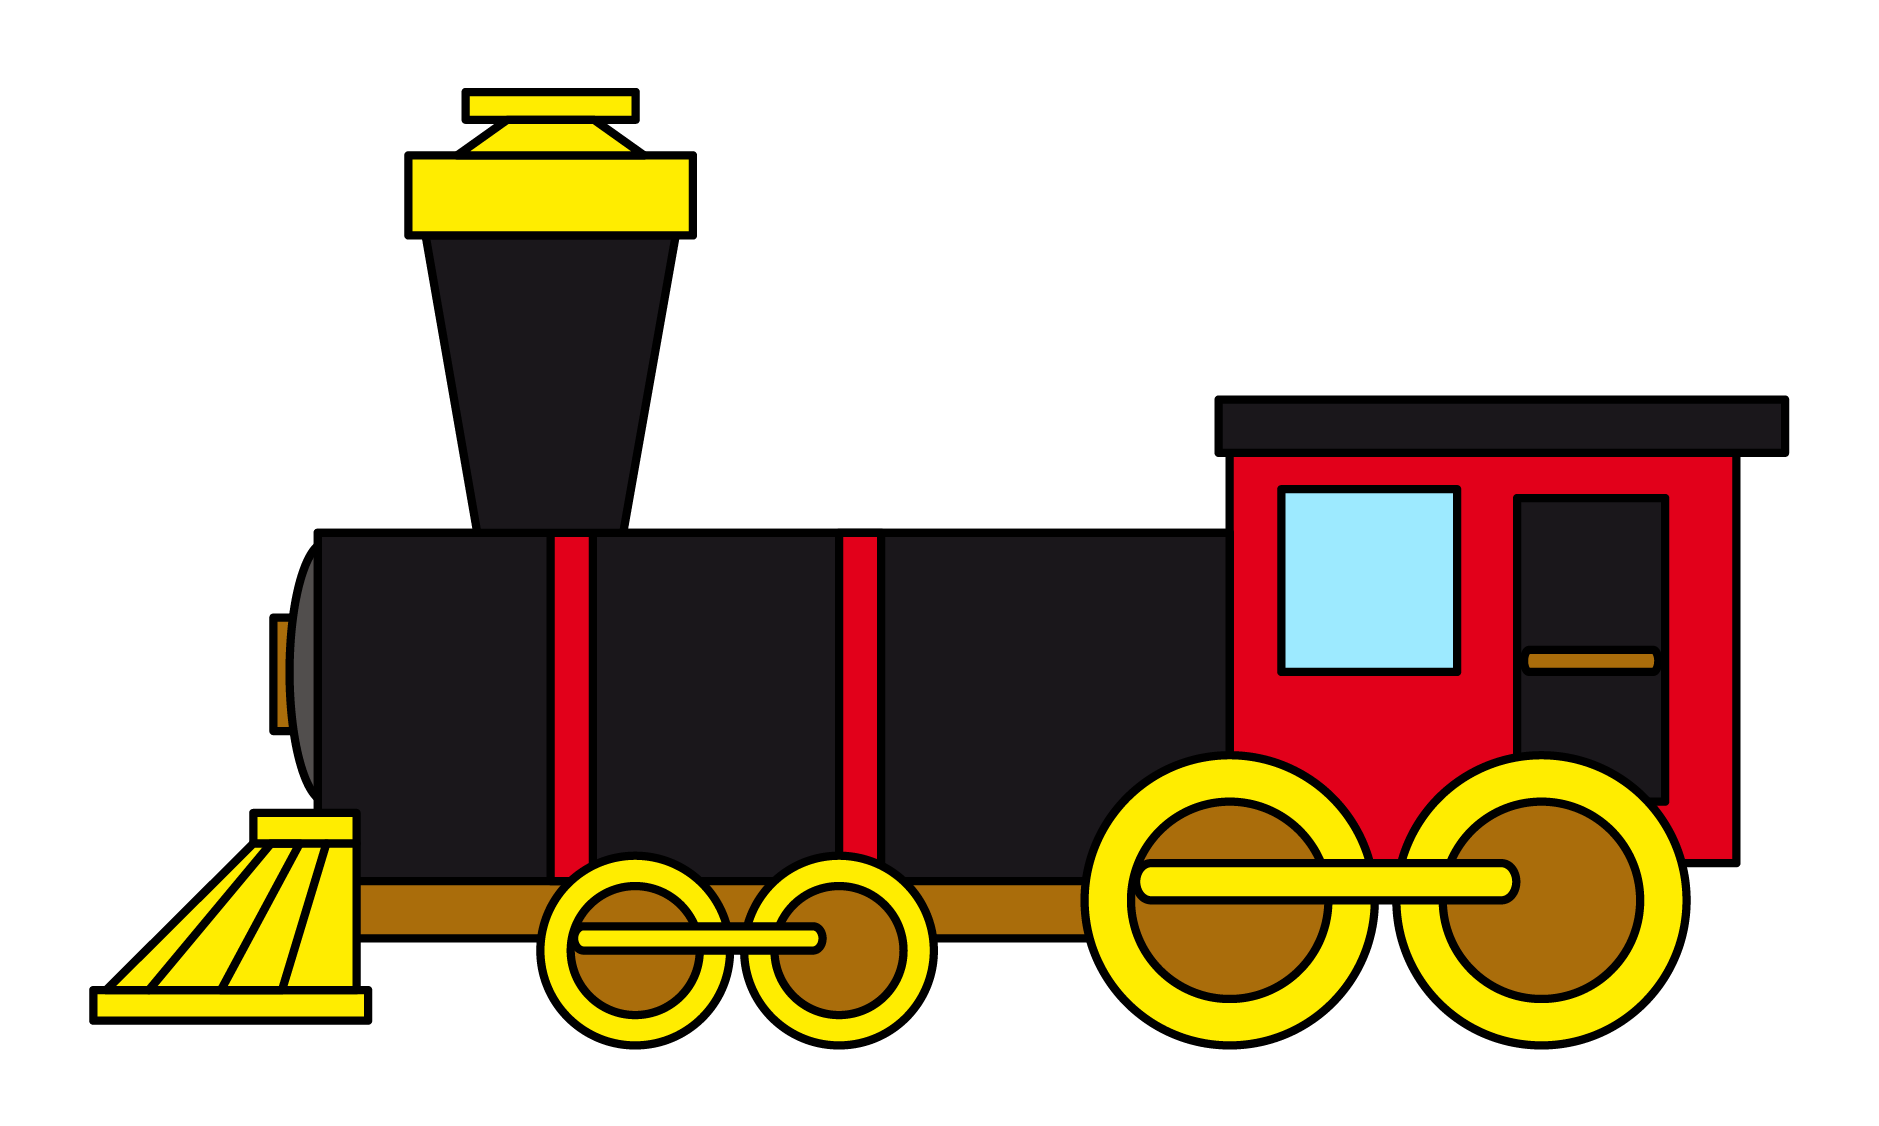 Engine clipart. Free to use public